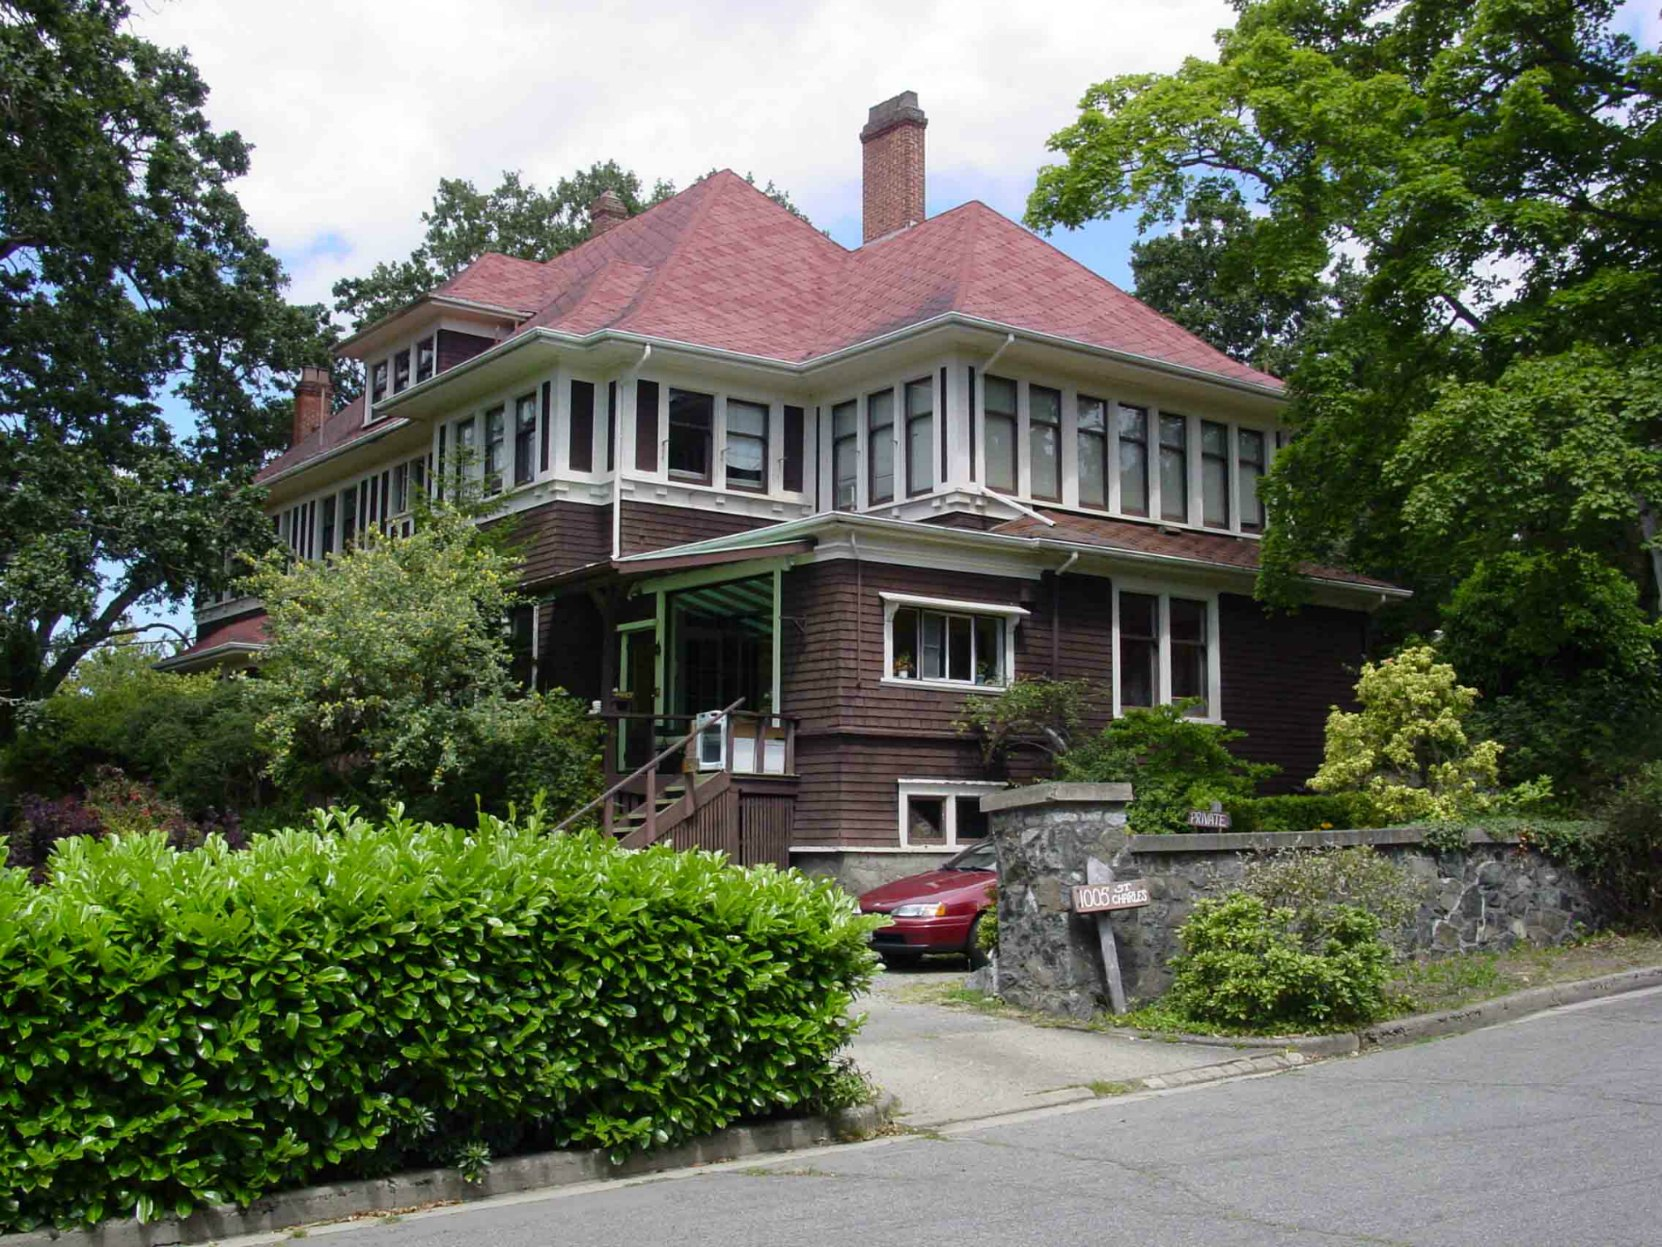 Simon Leiser's house at 1005 St. Charles Street, Victoria, B.C.